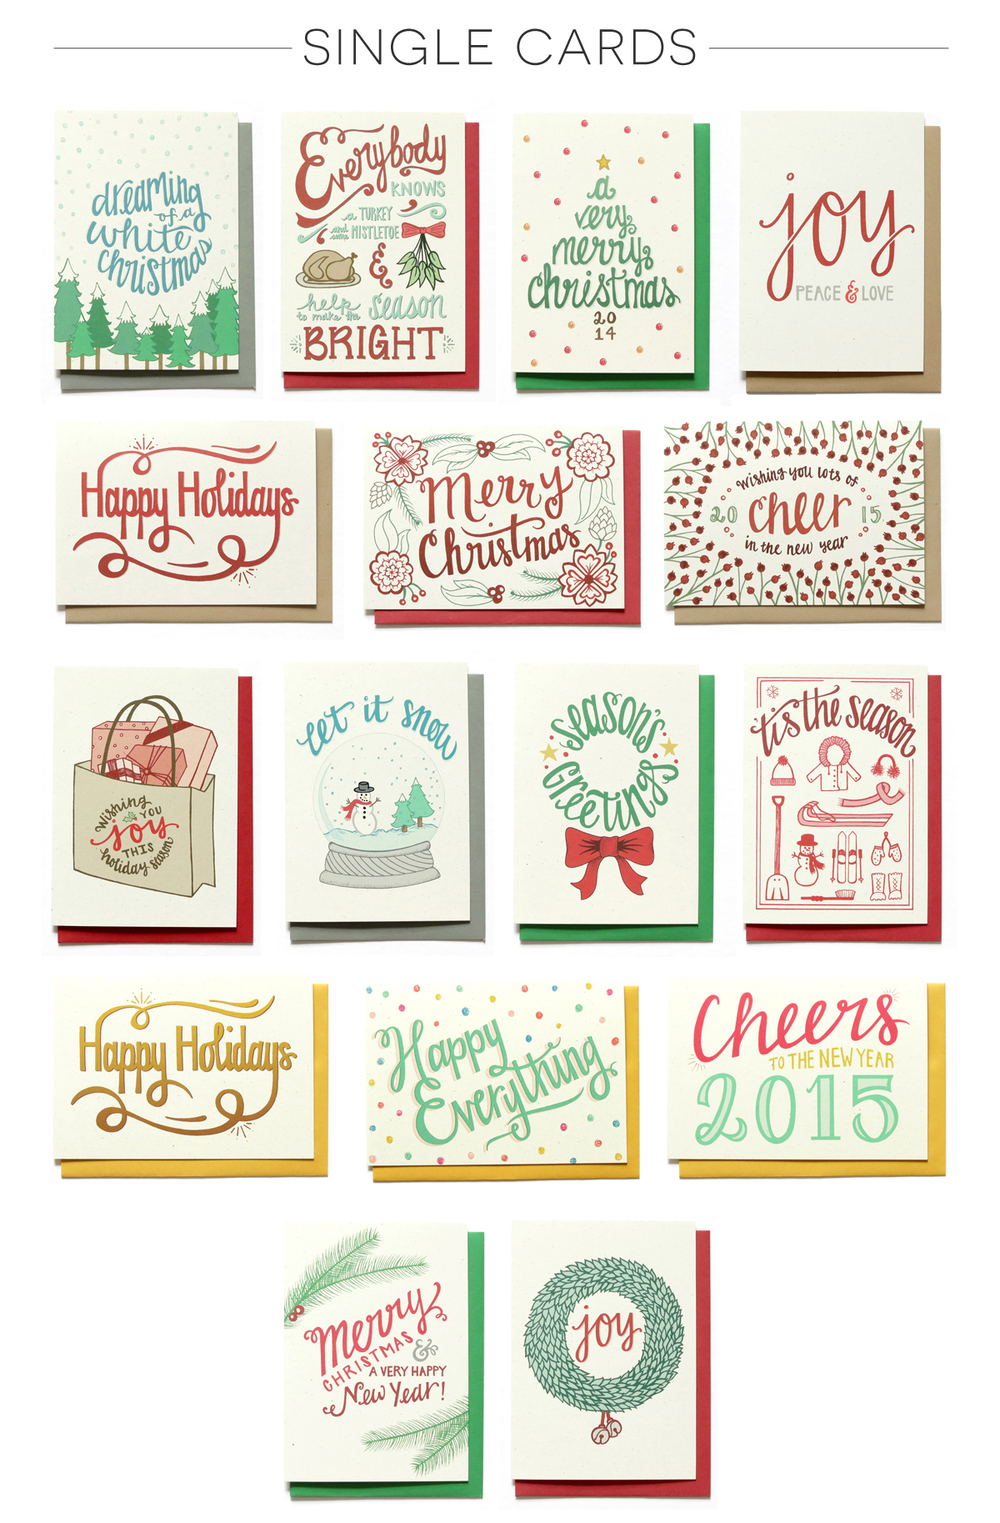 hpc-single-holiday-cards.jpg